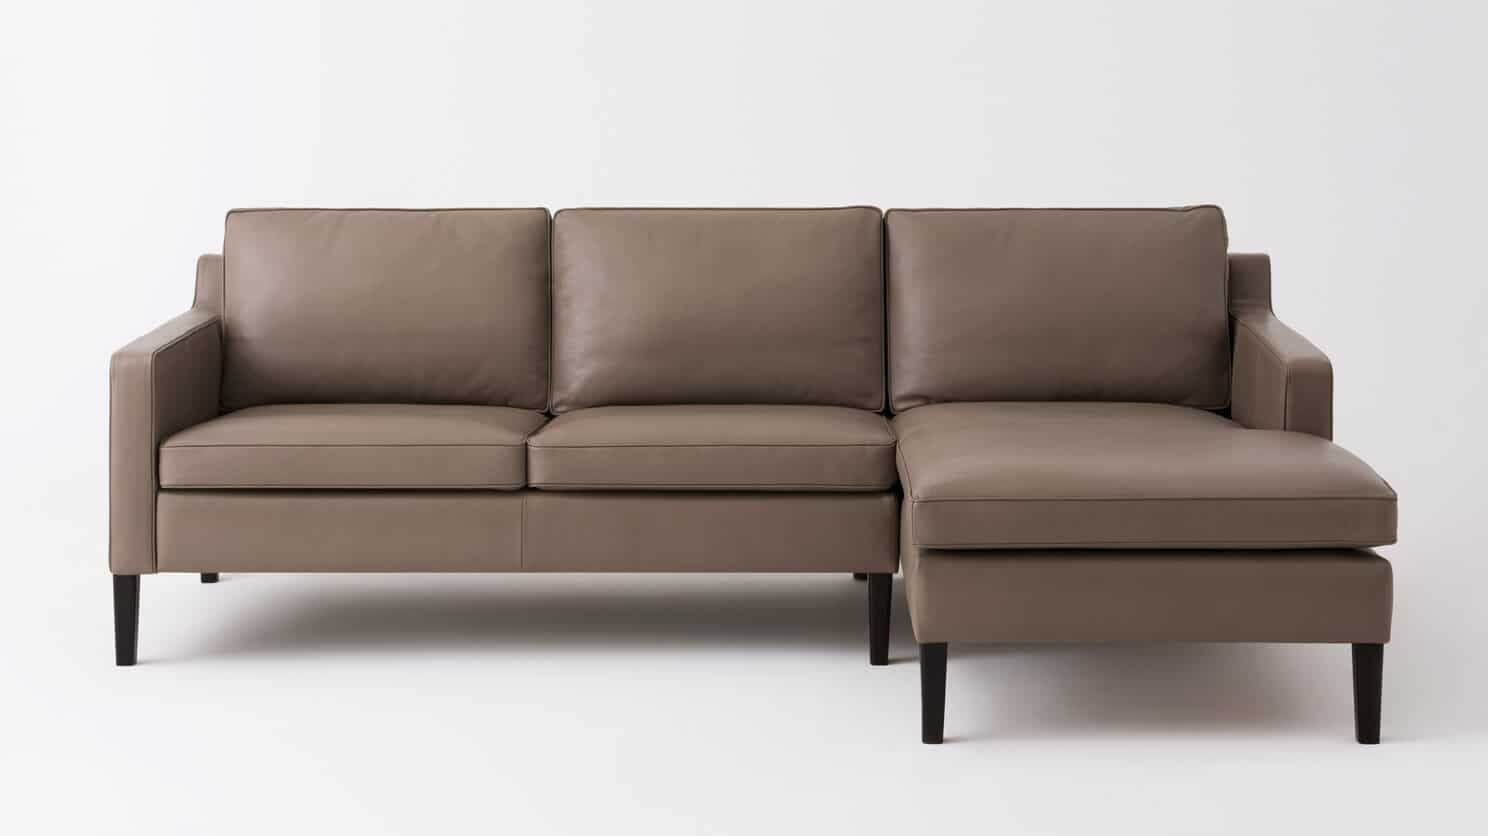 SKYE 2-PIECE SECTIONAL SOFA W/CHAISE - D3 Home San Diego - EQ3